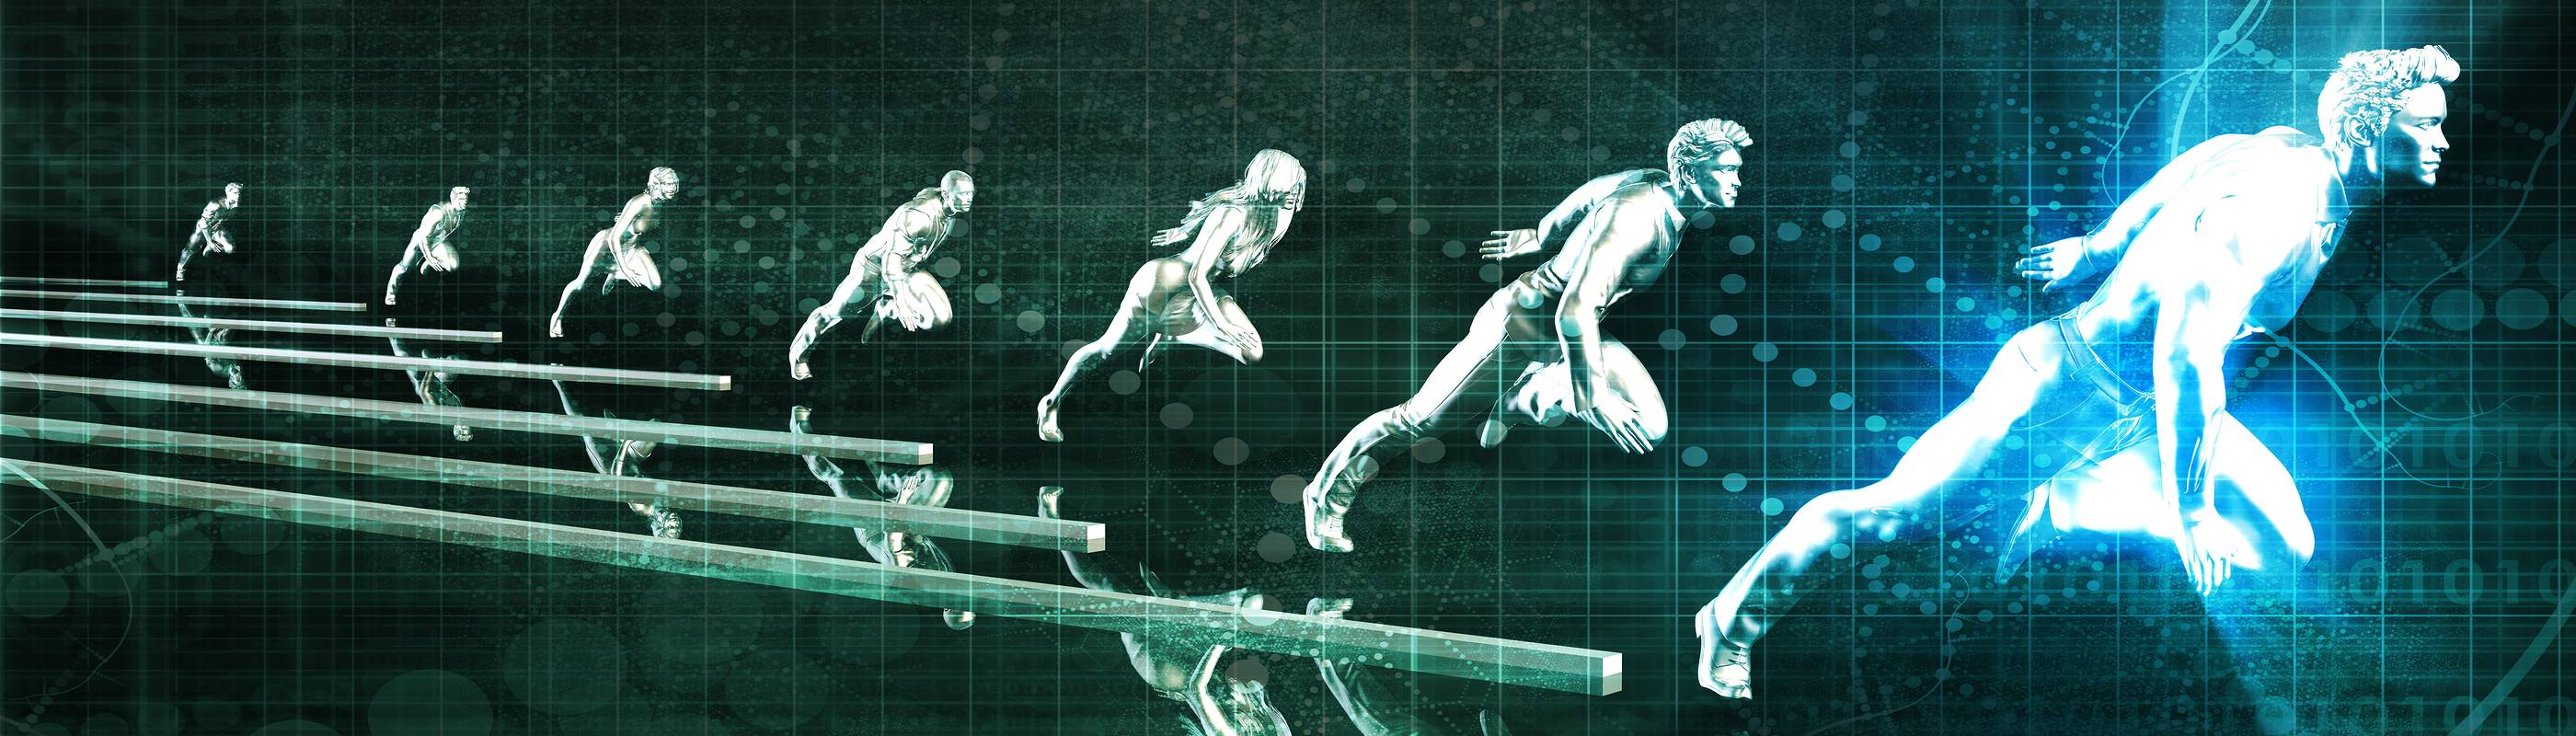 Abstract image of runners representing competing clients in a race